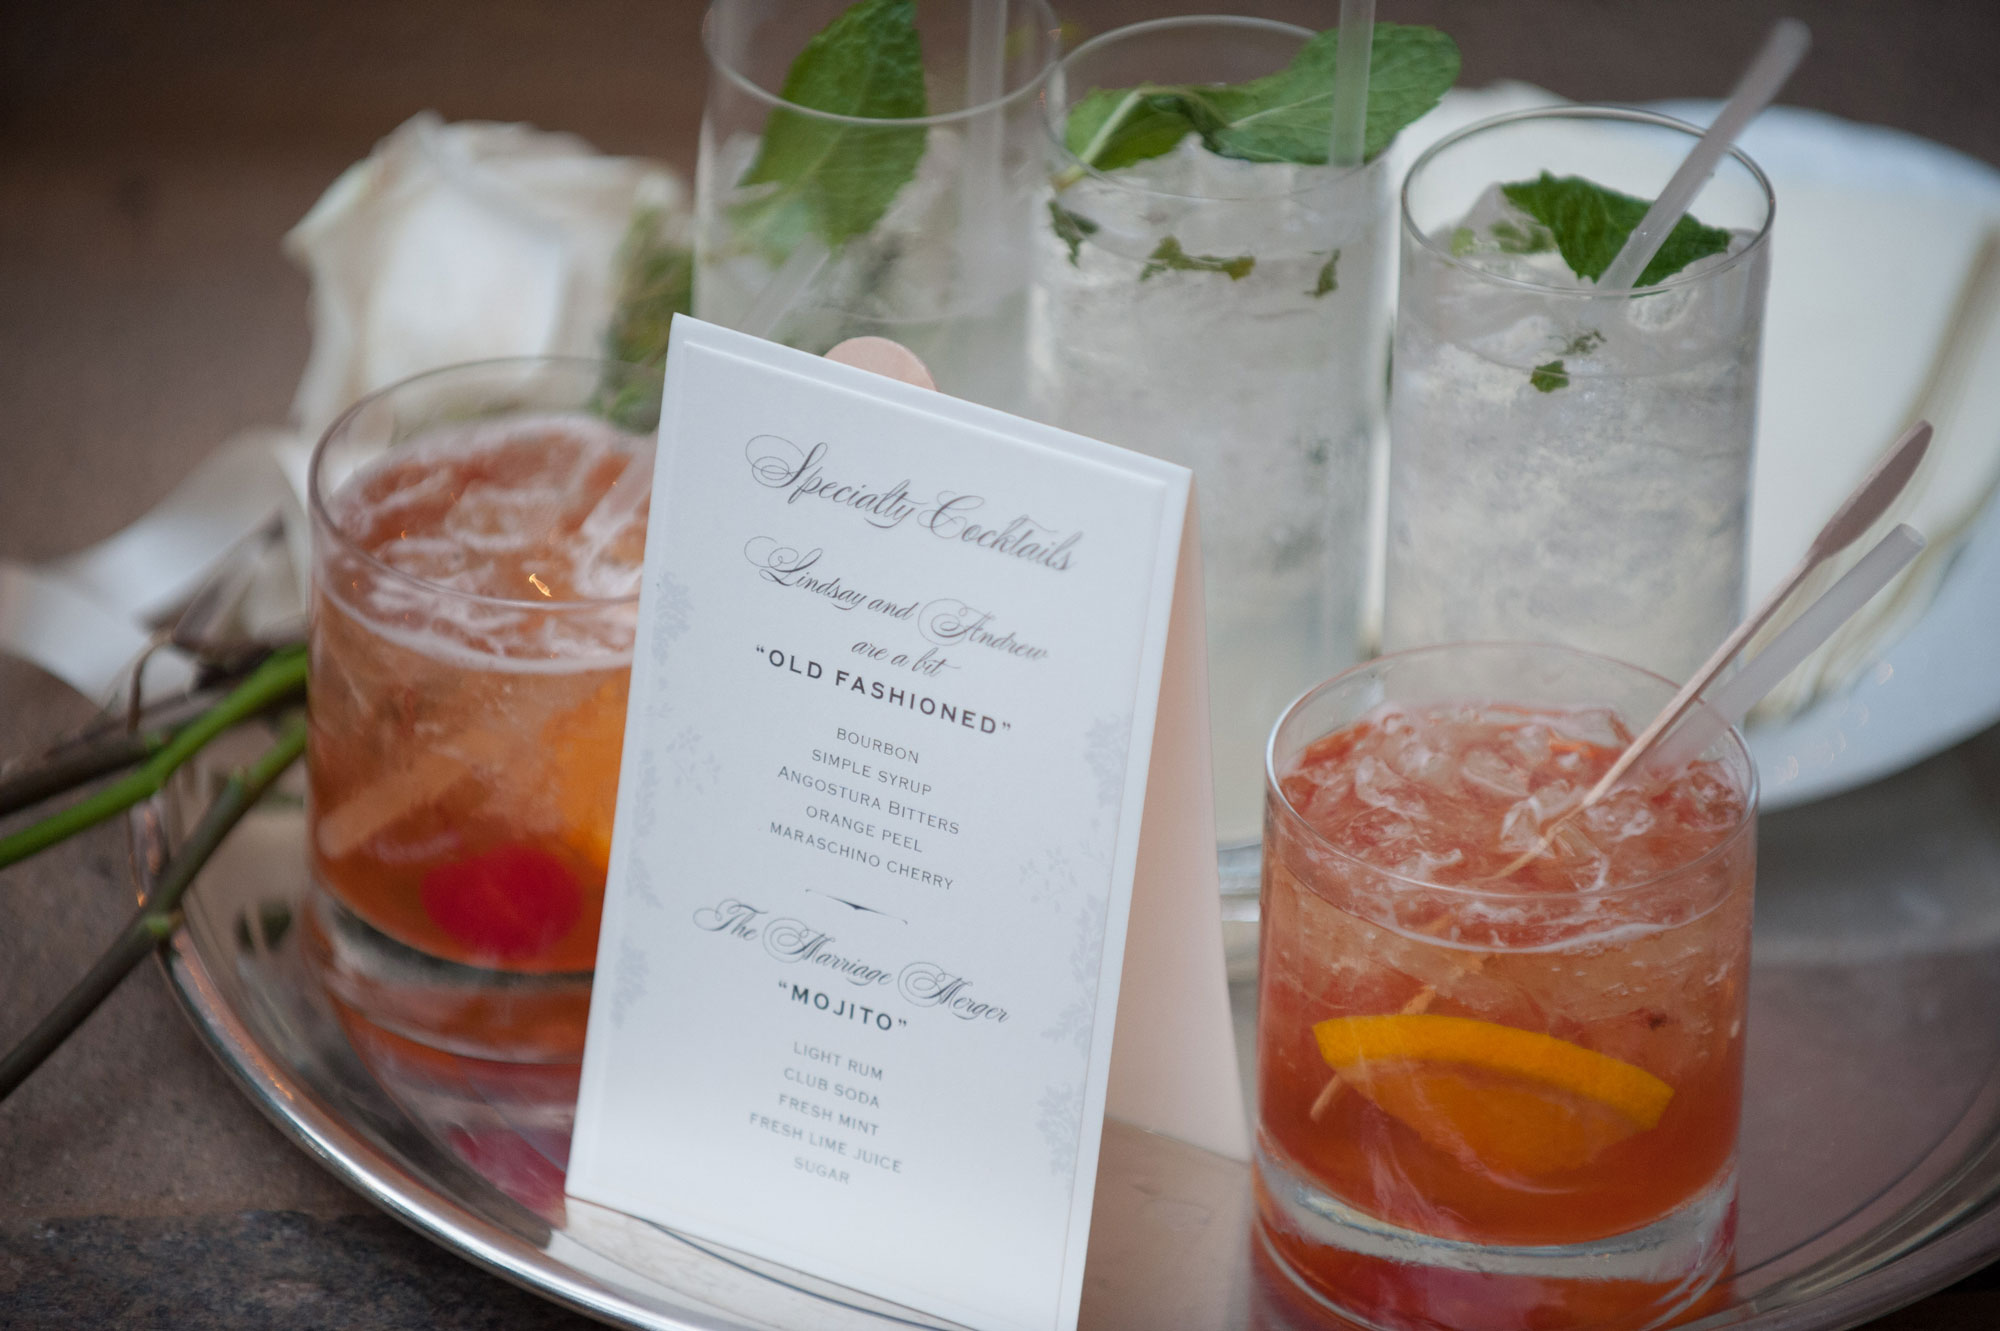 Inside Weddings Spring 2017 issue Signature cocktails and lehr and black details